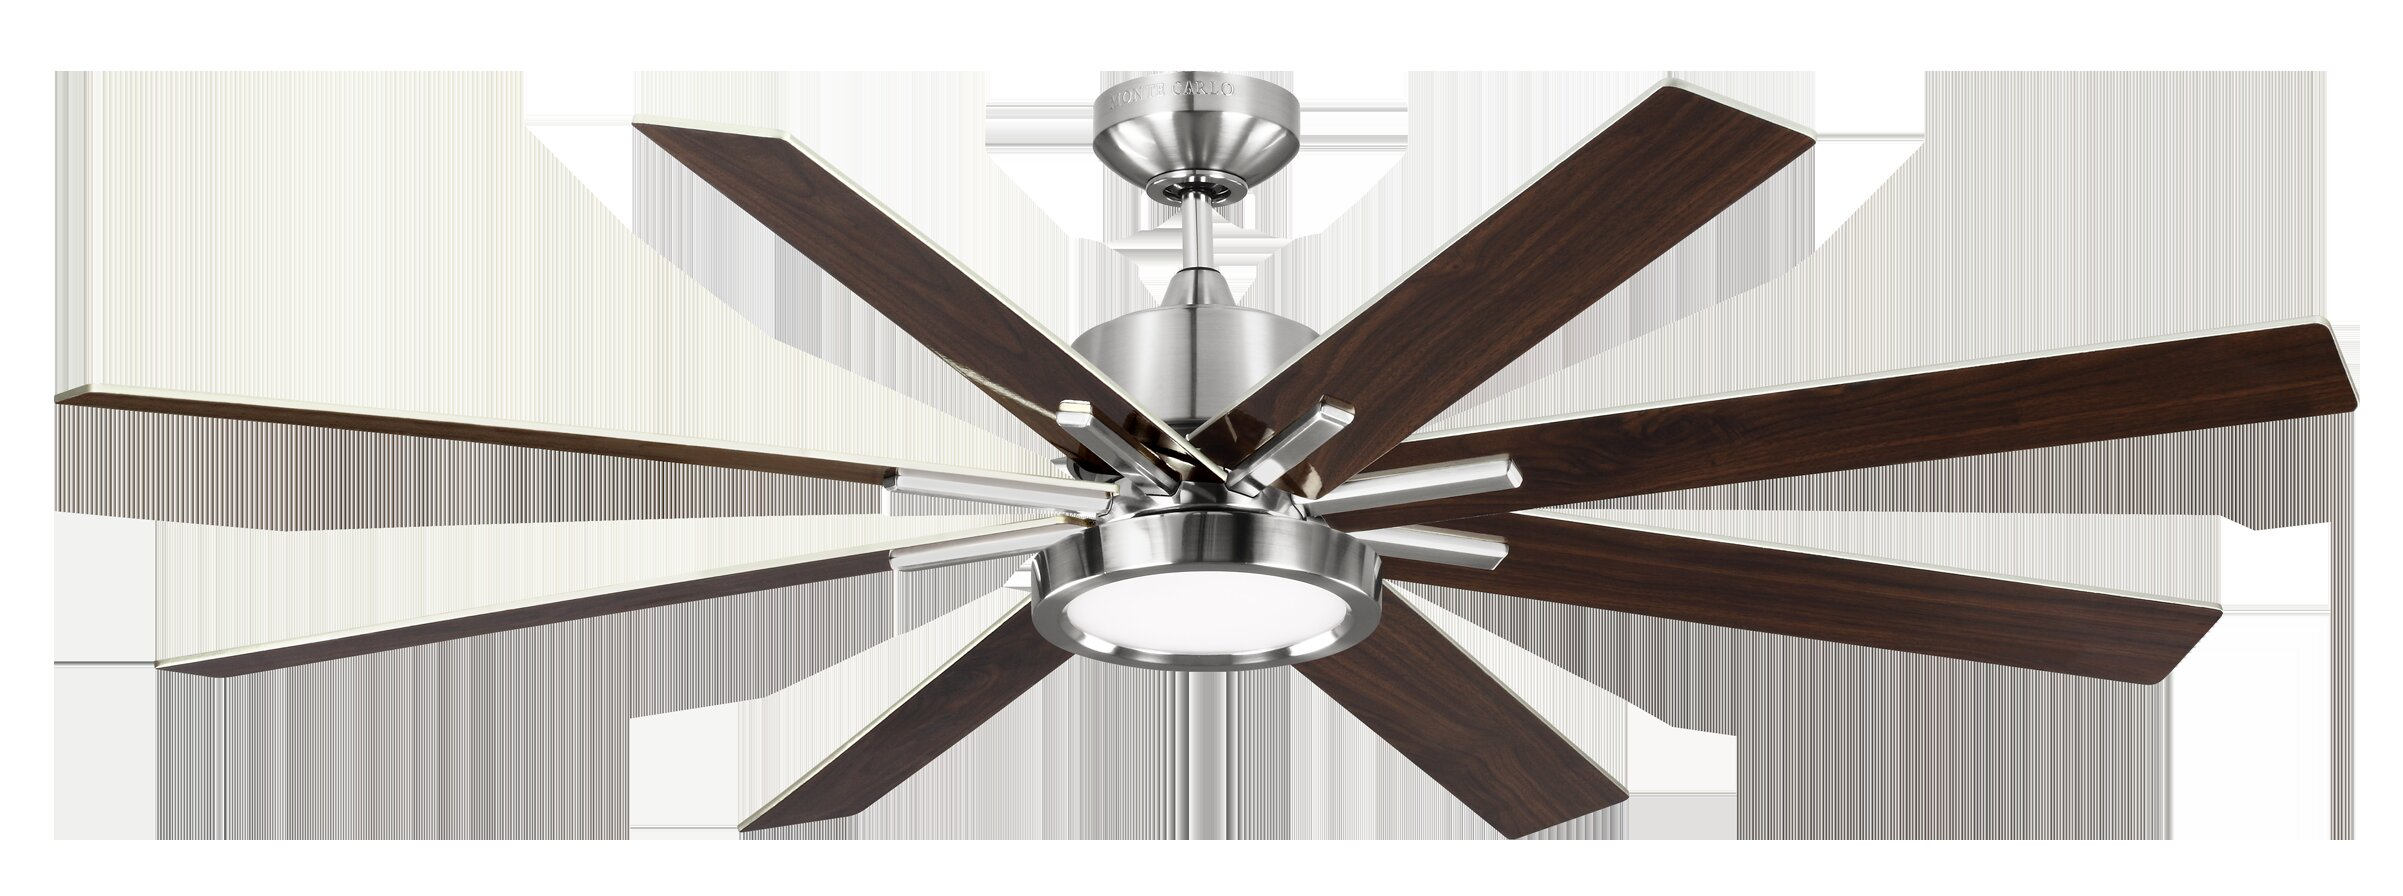 fan of light shades age ceiling products space black